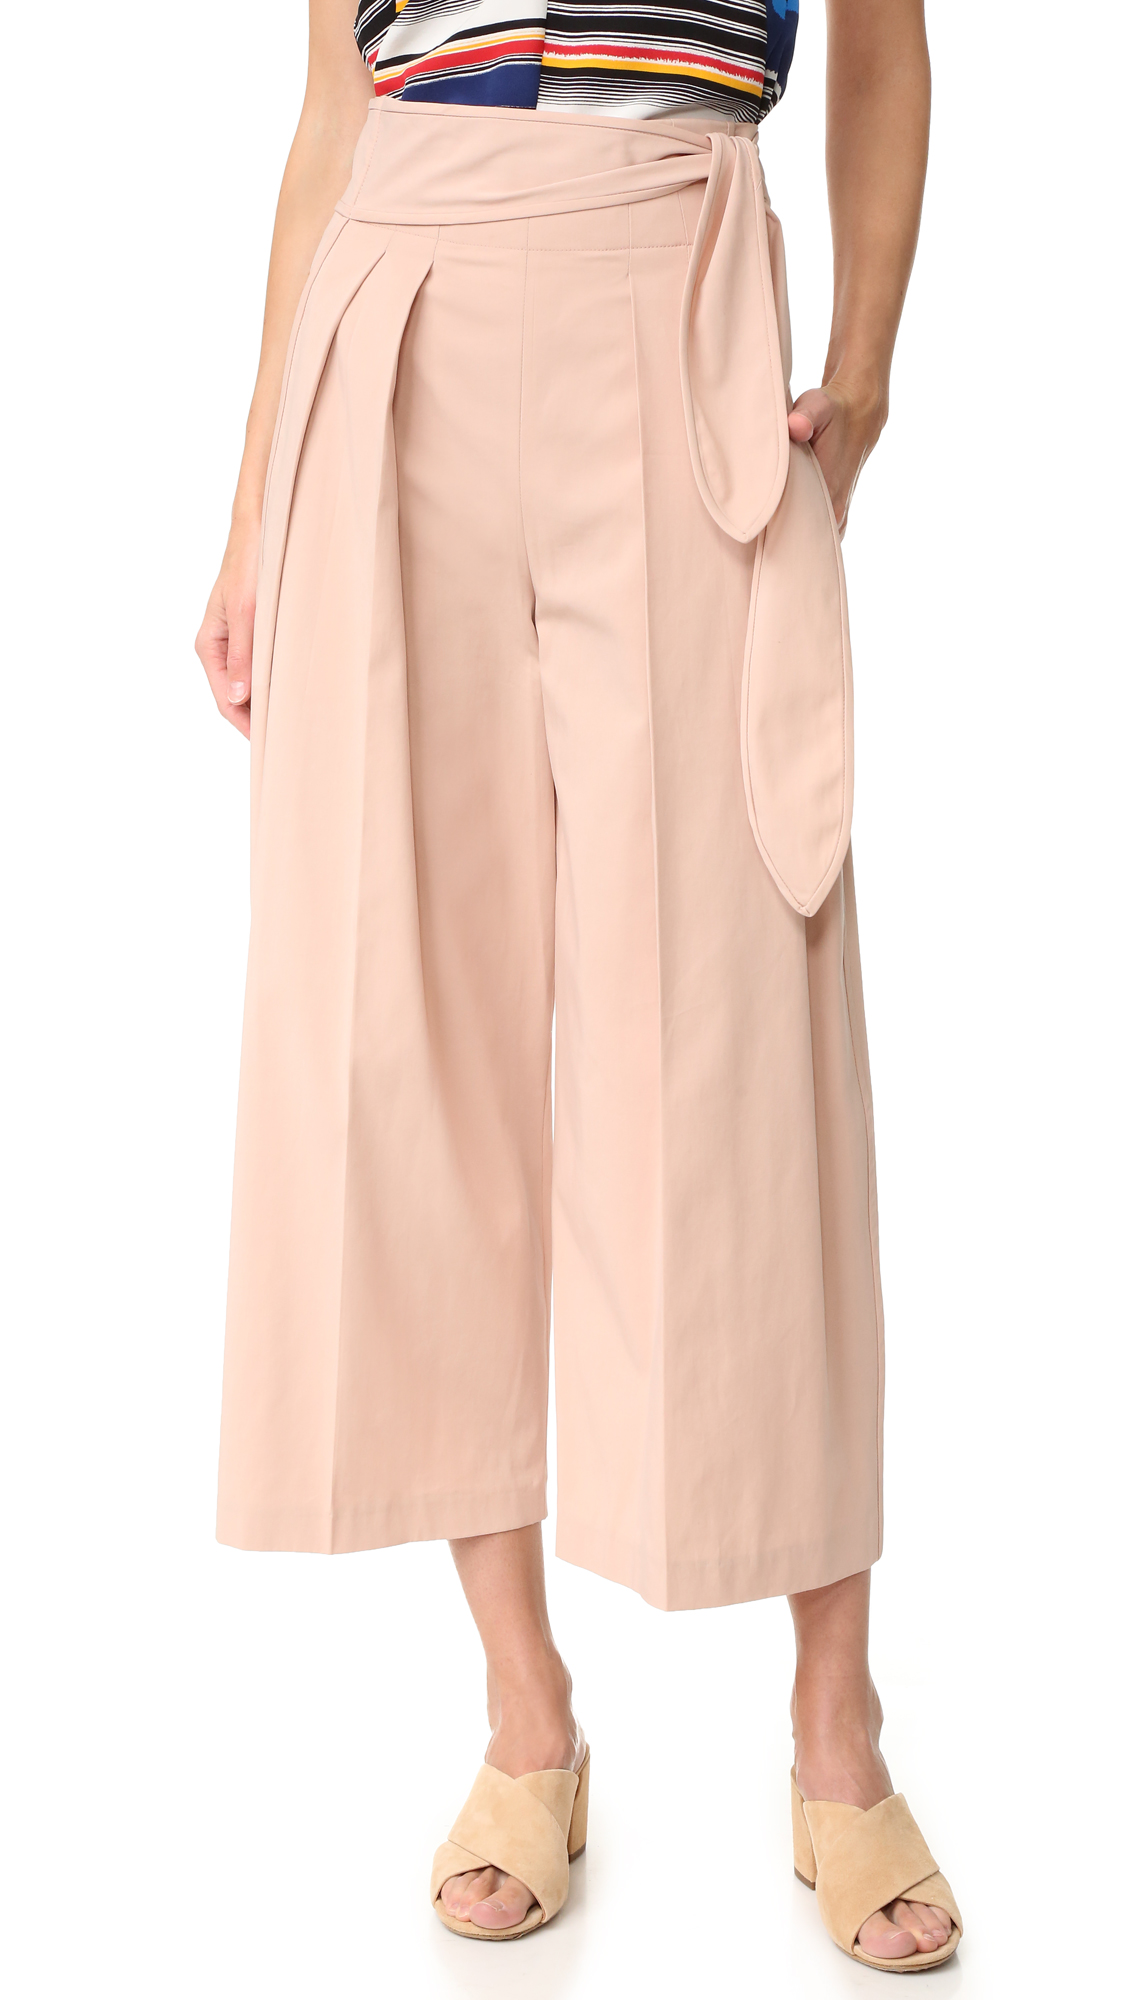 Edun Tie Waist Pants - Shell at Shopbop